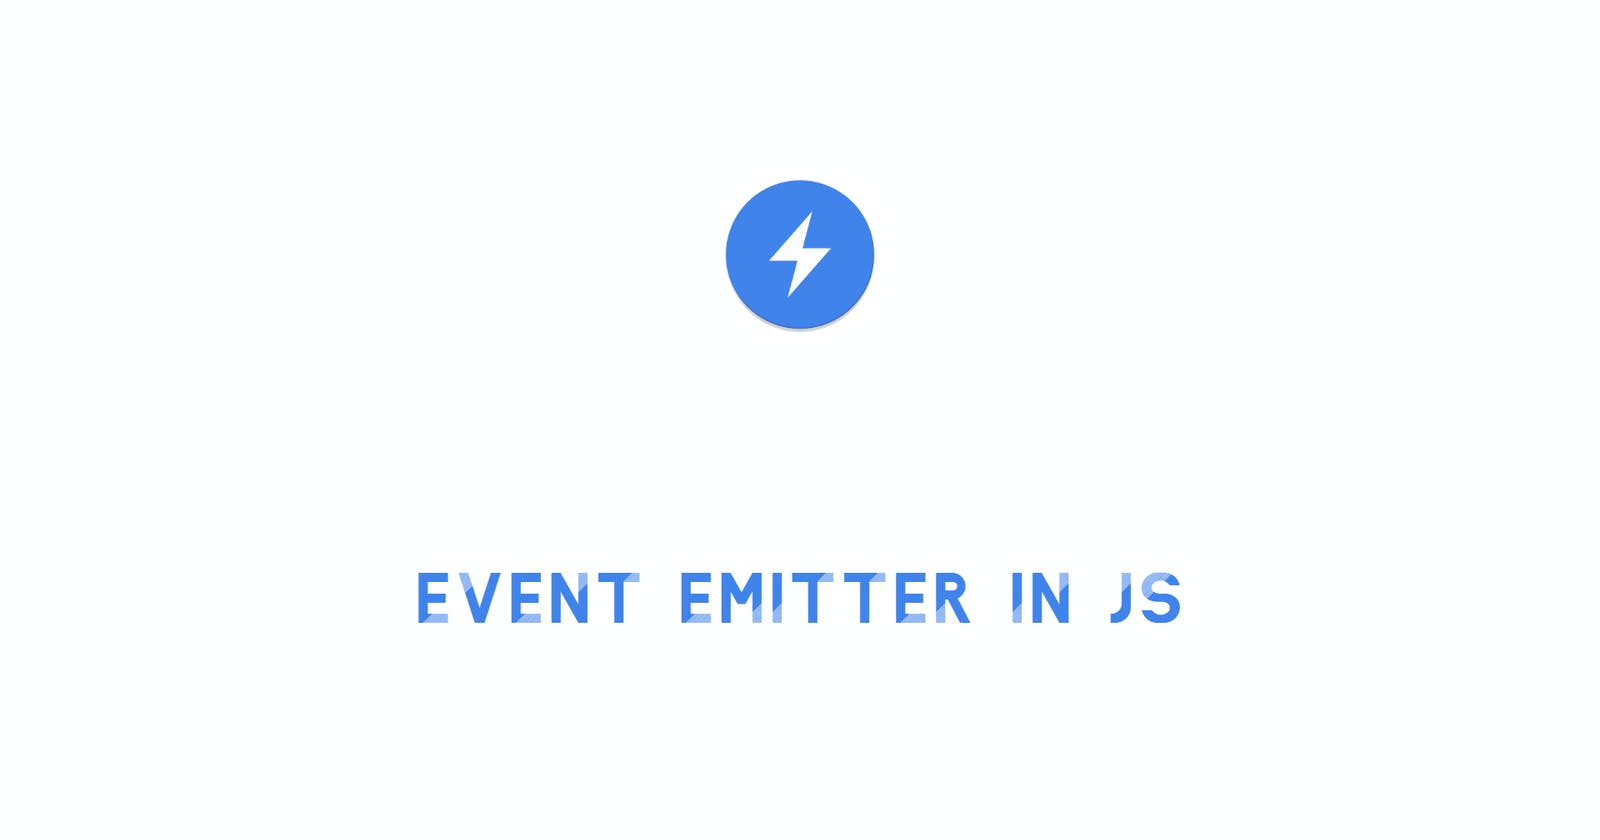 Create your own Event Emitter in JS